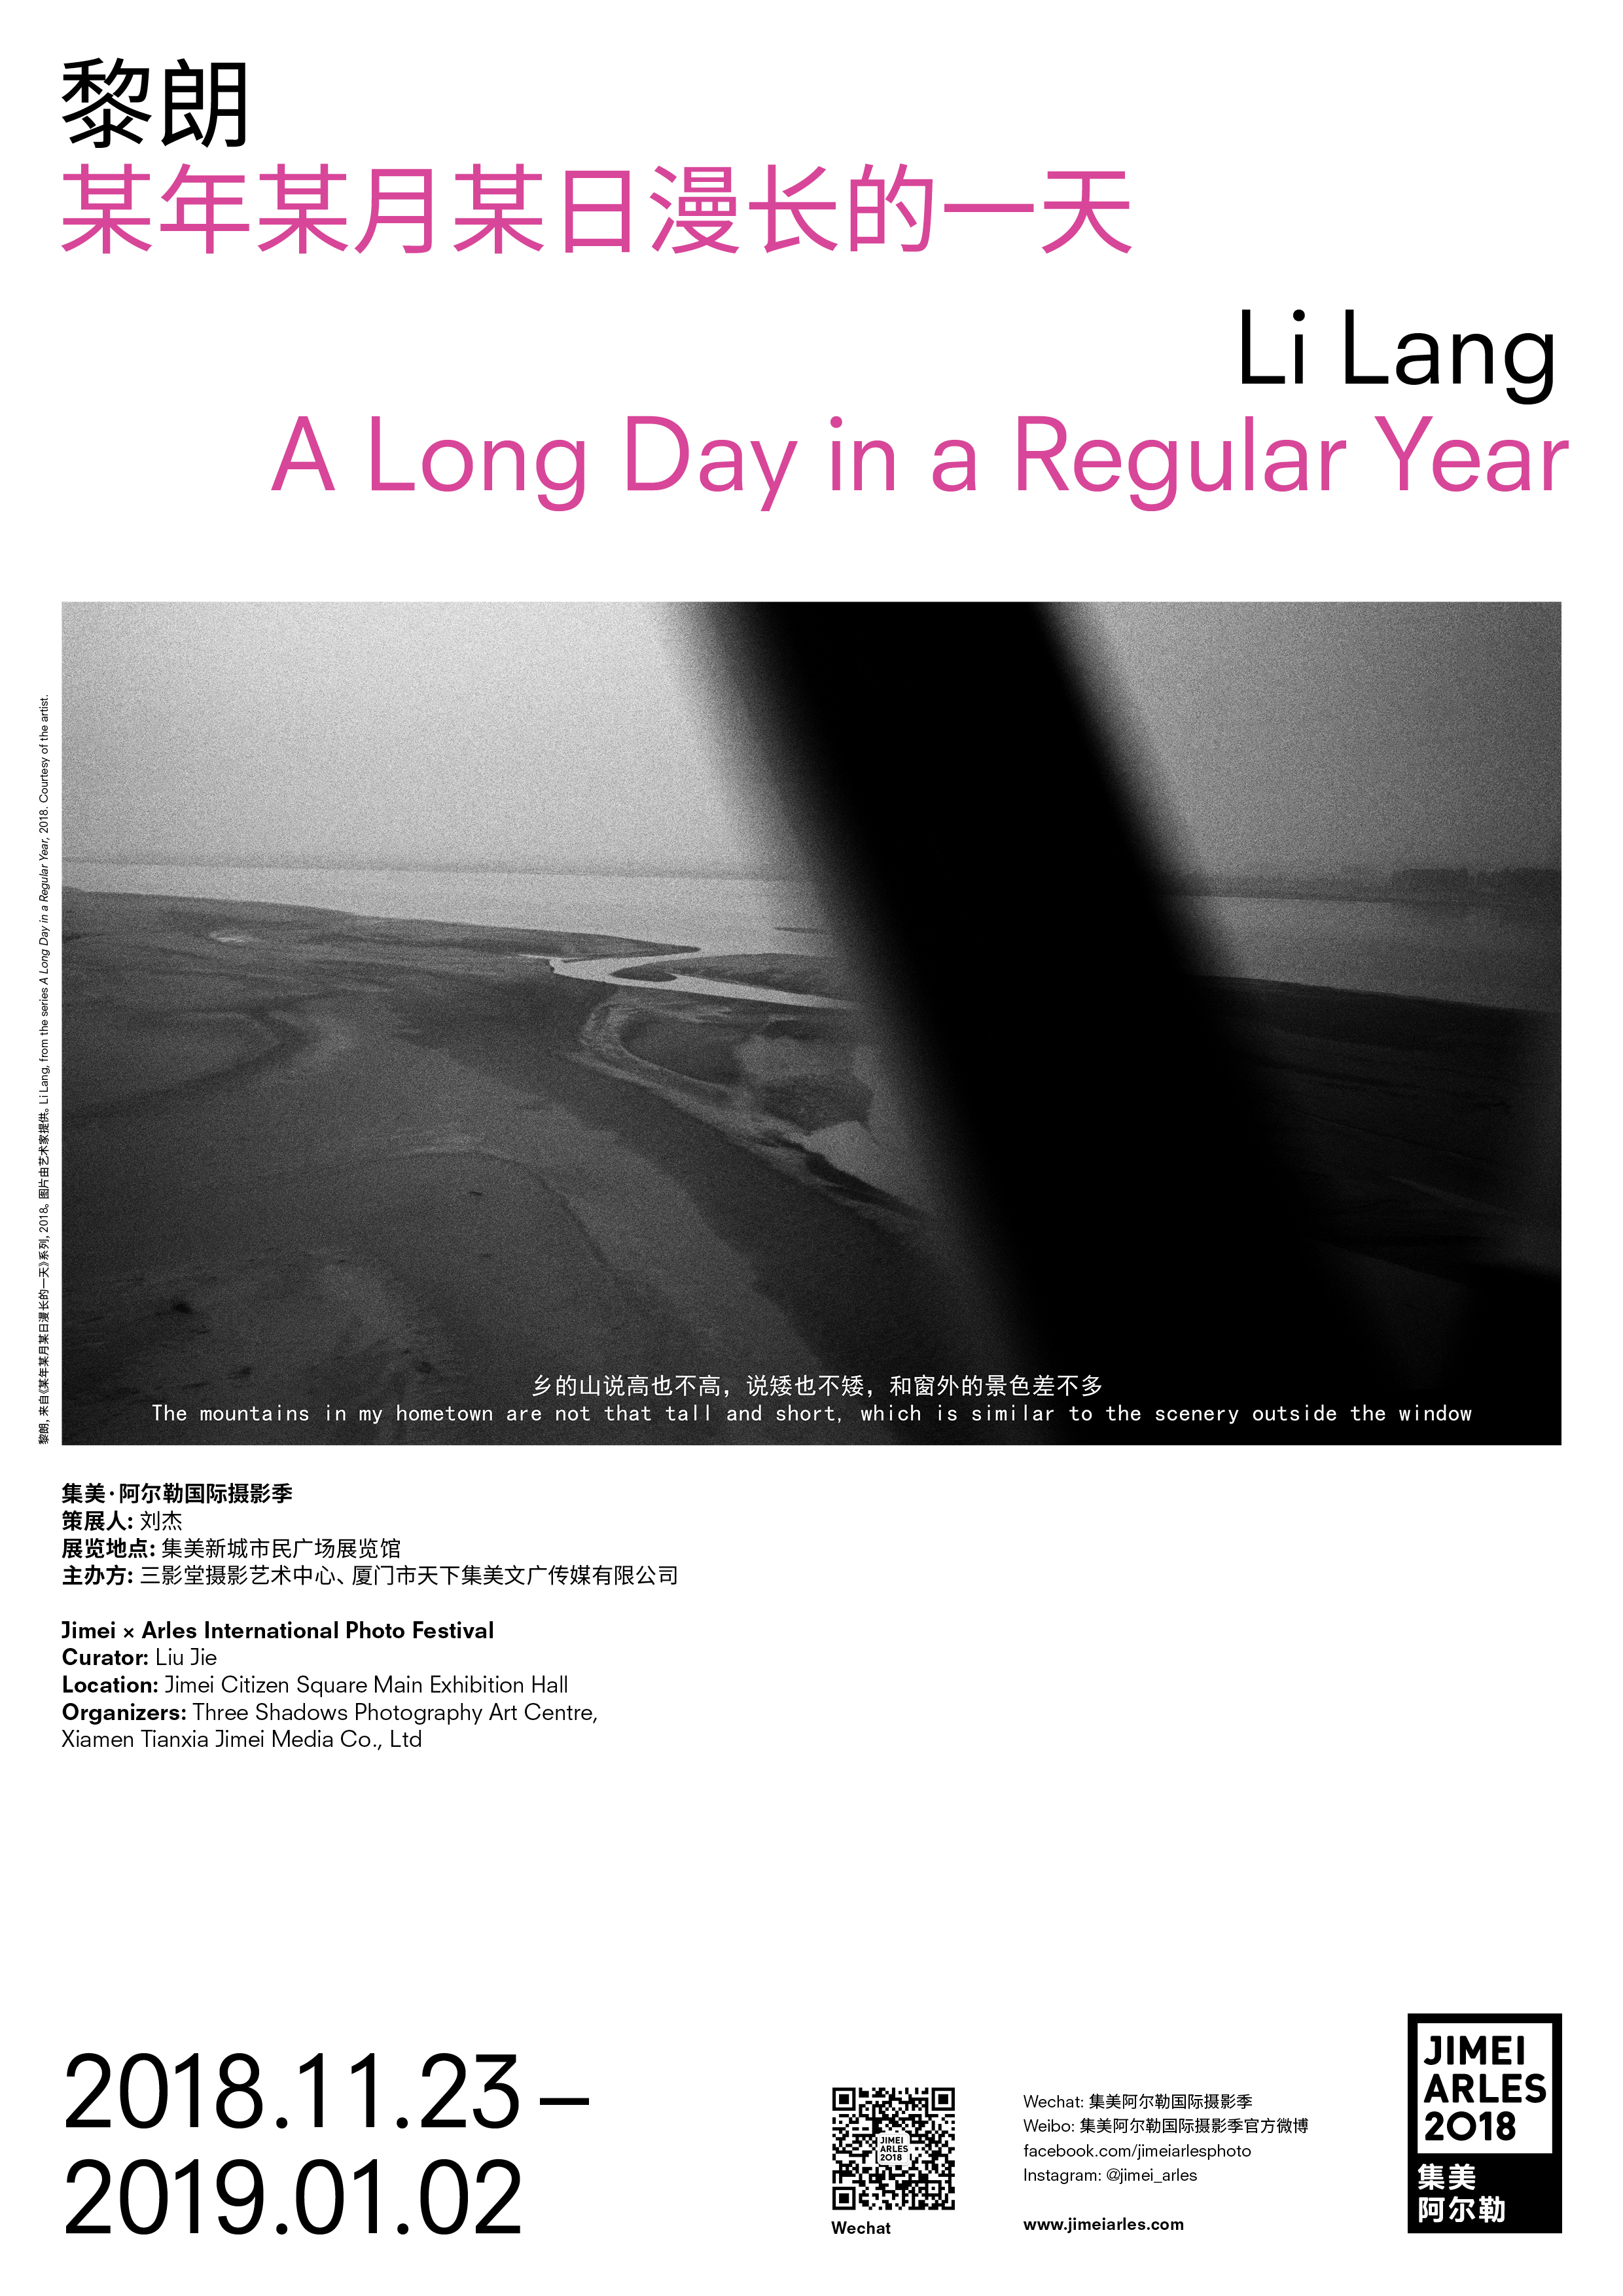 JIMEIARLES_exhibition poster_Digital_Li_Lang.jpg